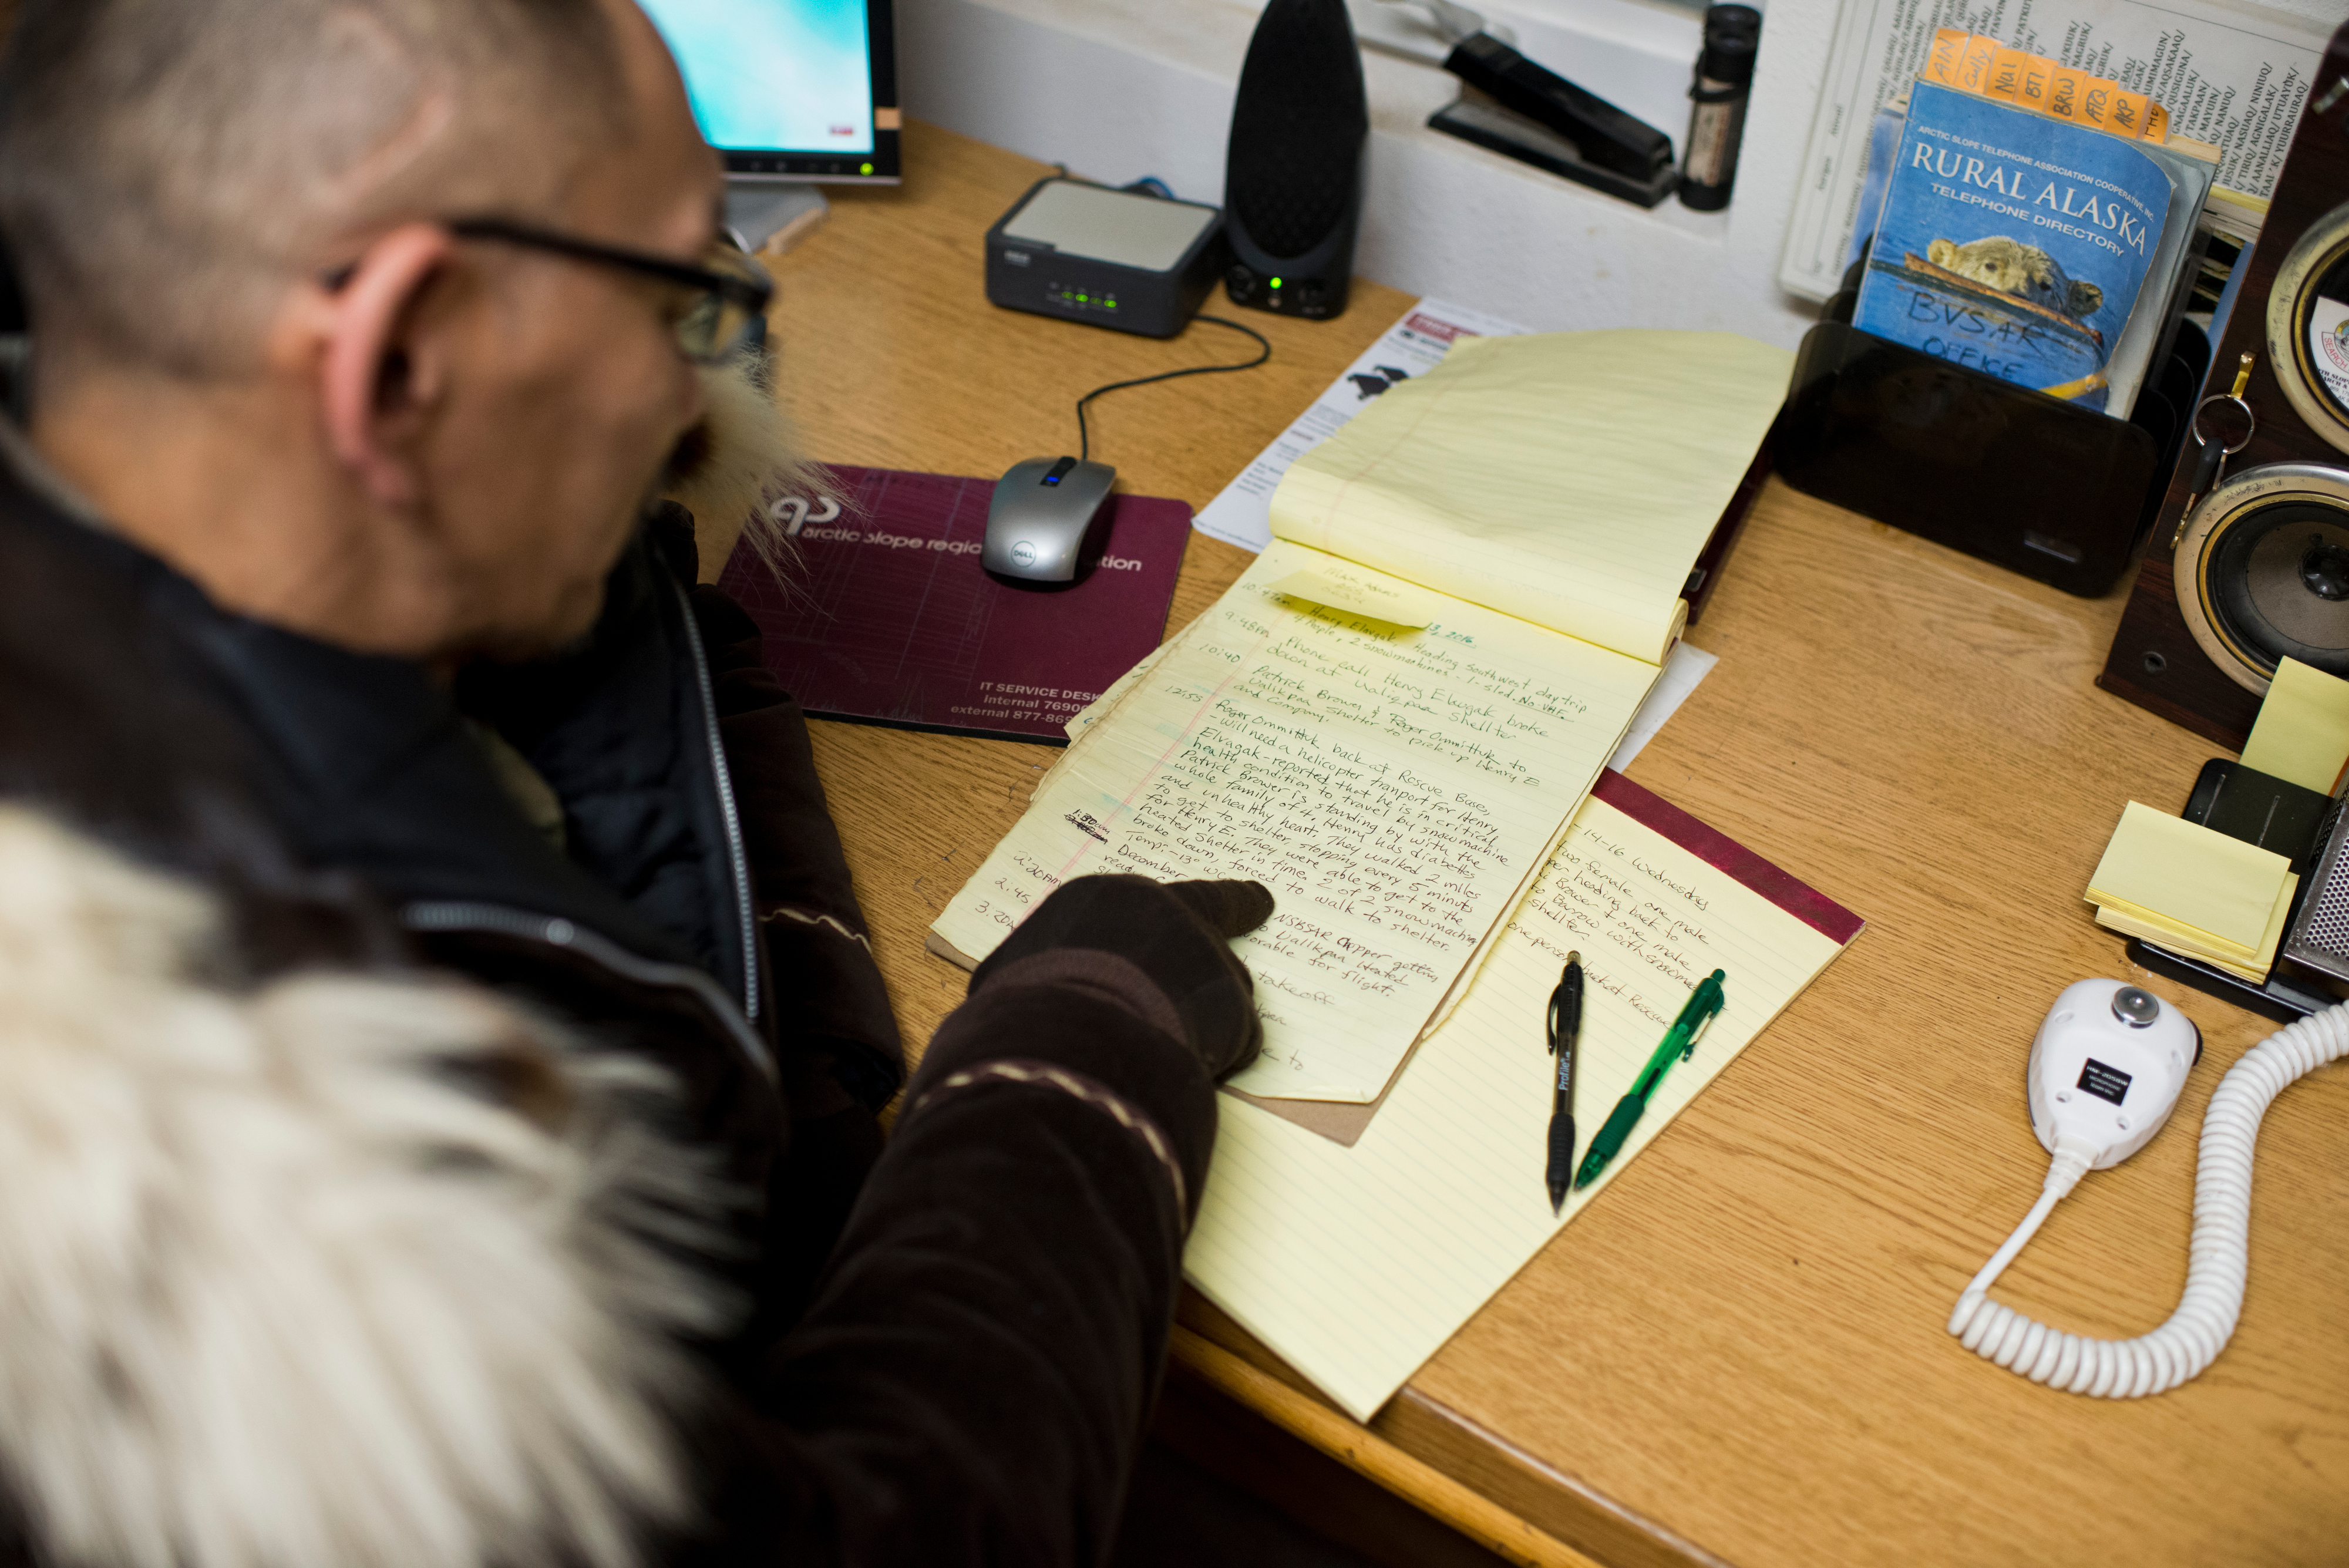 Steven Leavitt reviews a hand-written log that records the group's activities at their Utqiagvik headquarters. When someone is lost or stranded in the wild lands within 25 miles of Utqiagvik, volunteers from Barrow Search and Rescue often take they lead in retrieving them. The group also has helped map camps and cabins in the region, stake trails between village and provide emergency beacons for travelers. Photographed on Thursday, December 15, 2016. (Marc Lester / Alaska Dispatch News)